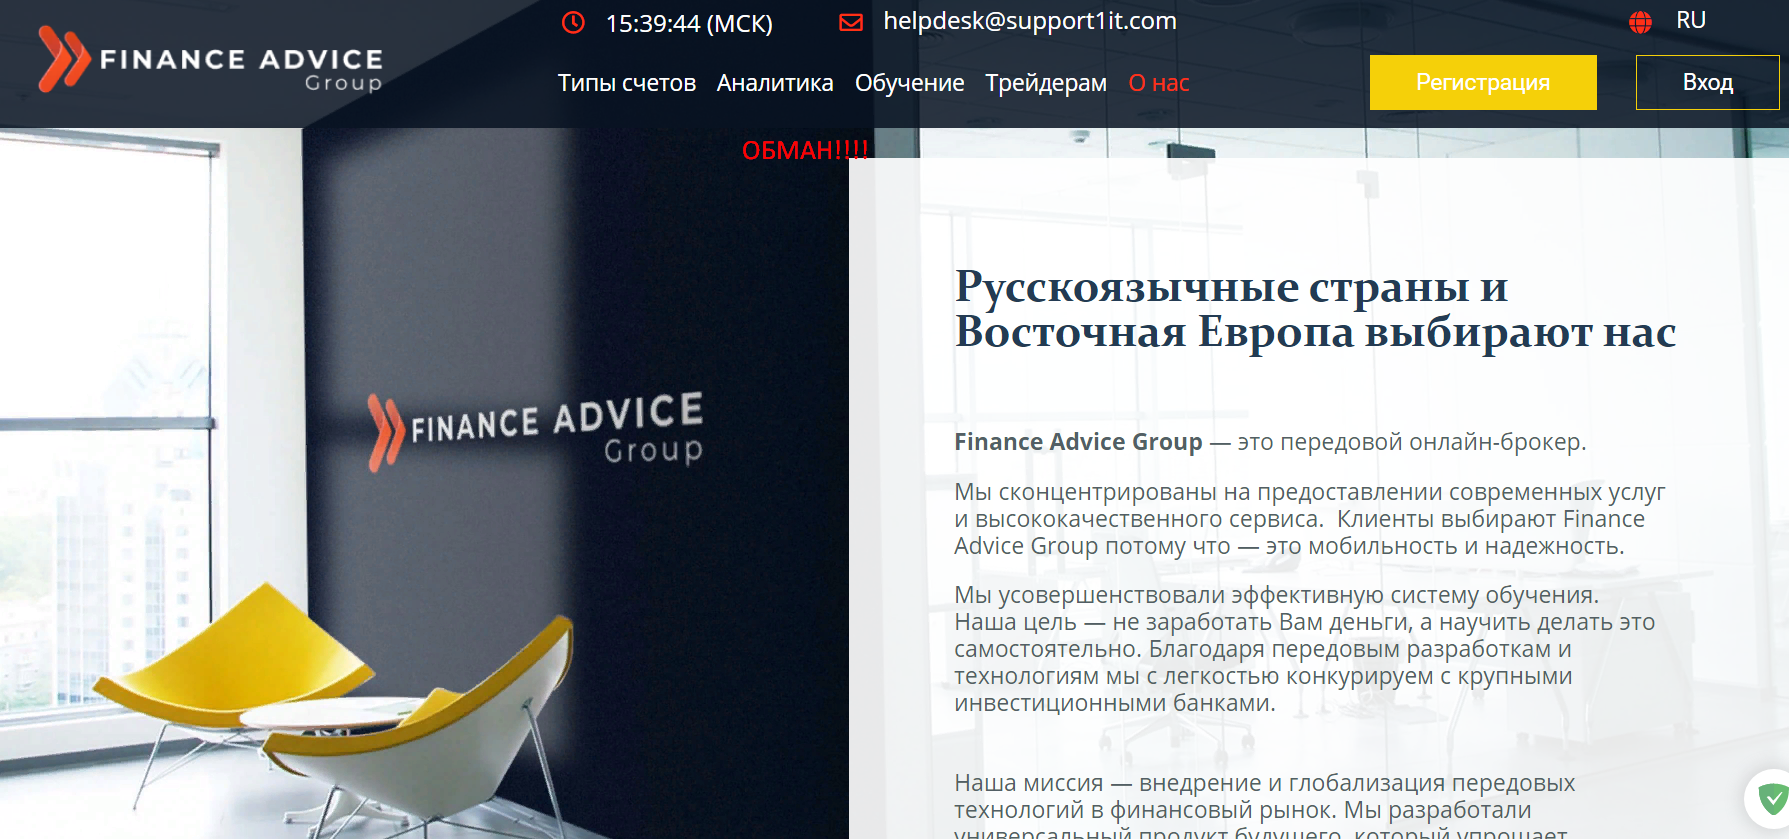 Finance Advice Group обман